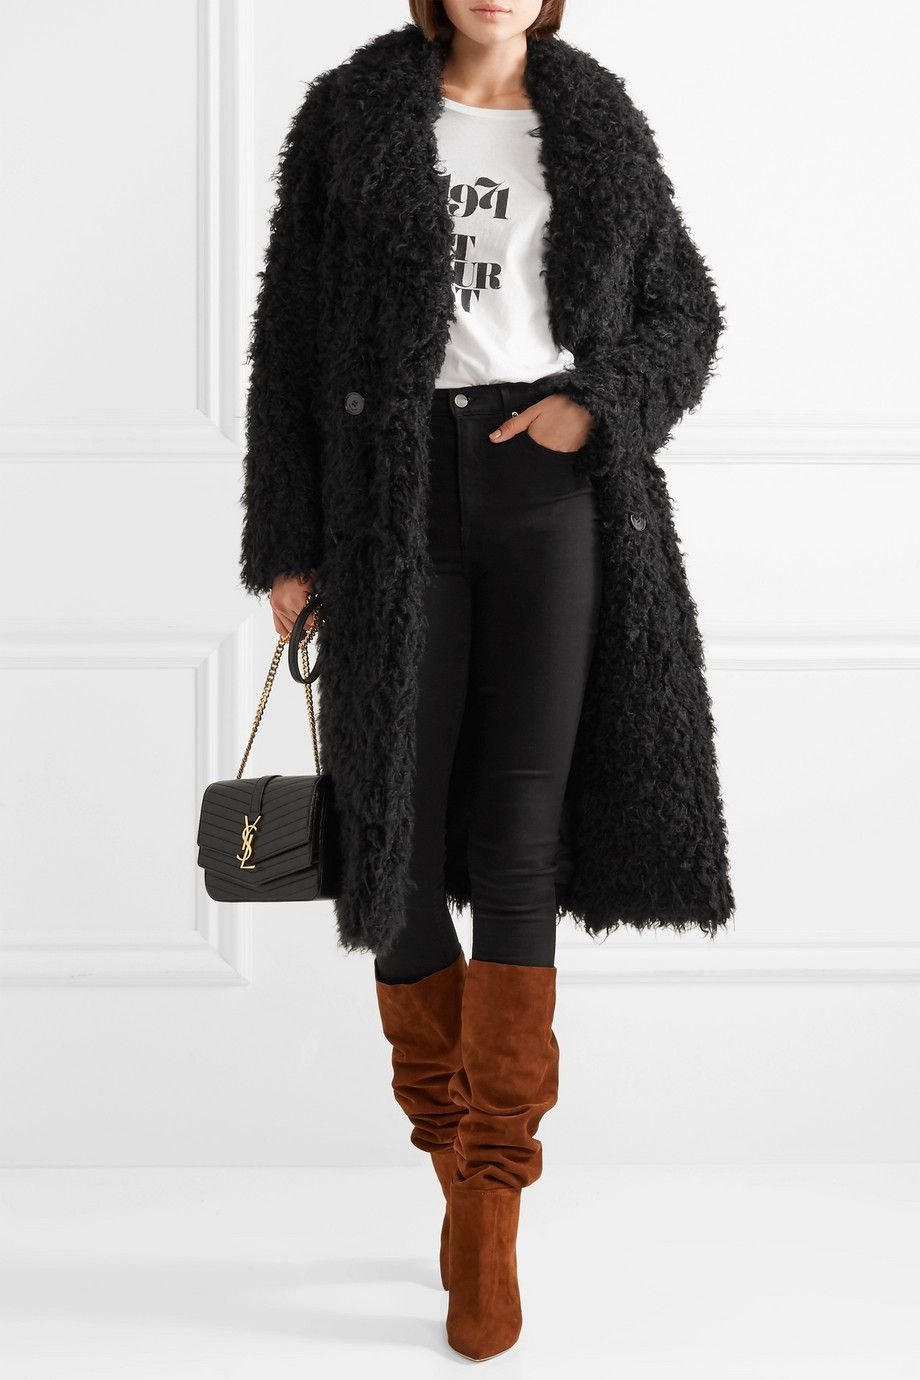 7cbff4f4ecc Saint Laurent | Oversized double-breasted faux shearling coat |  NET-A-PORTER.COM